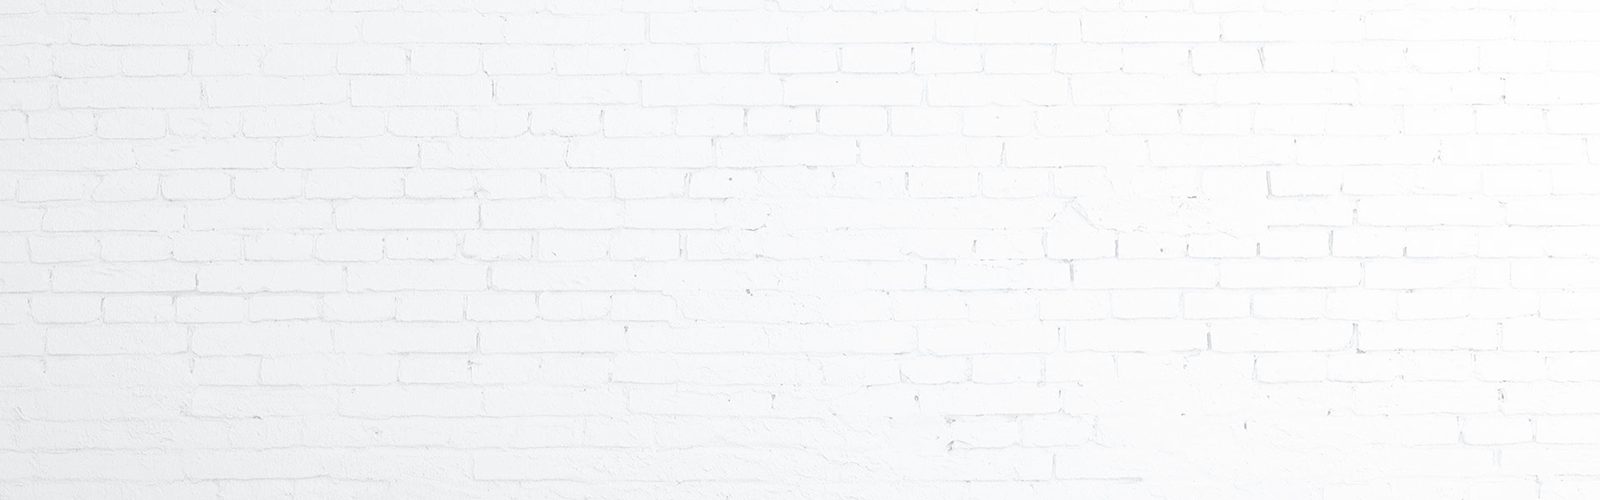 image of a blank banner background